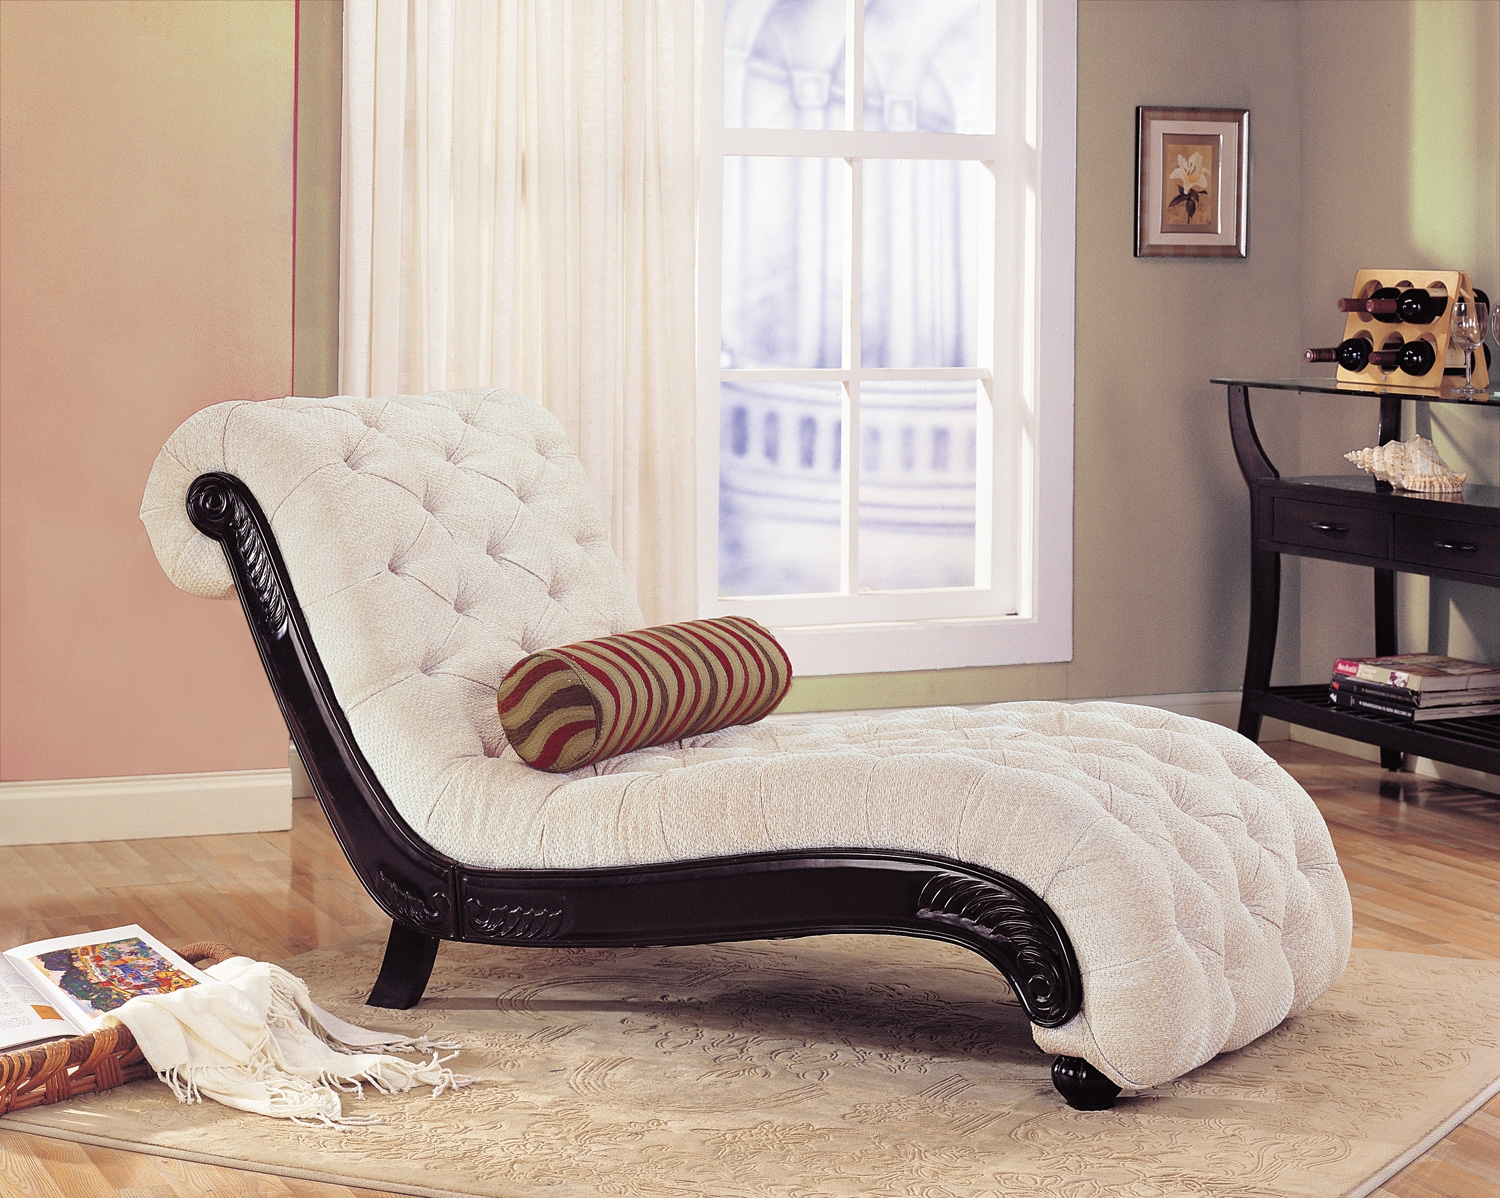 - How To Find Great Chaise Lounge Chairs - Decor Ideas